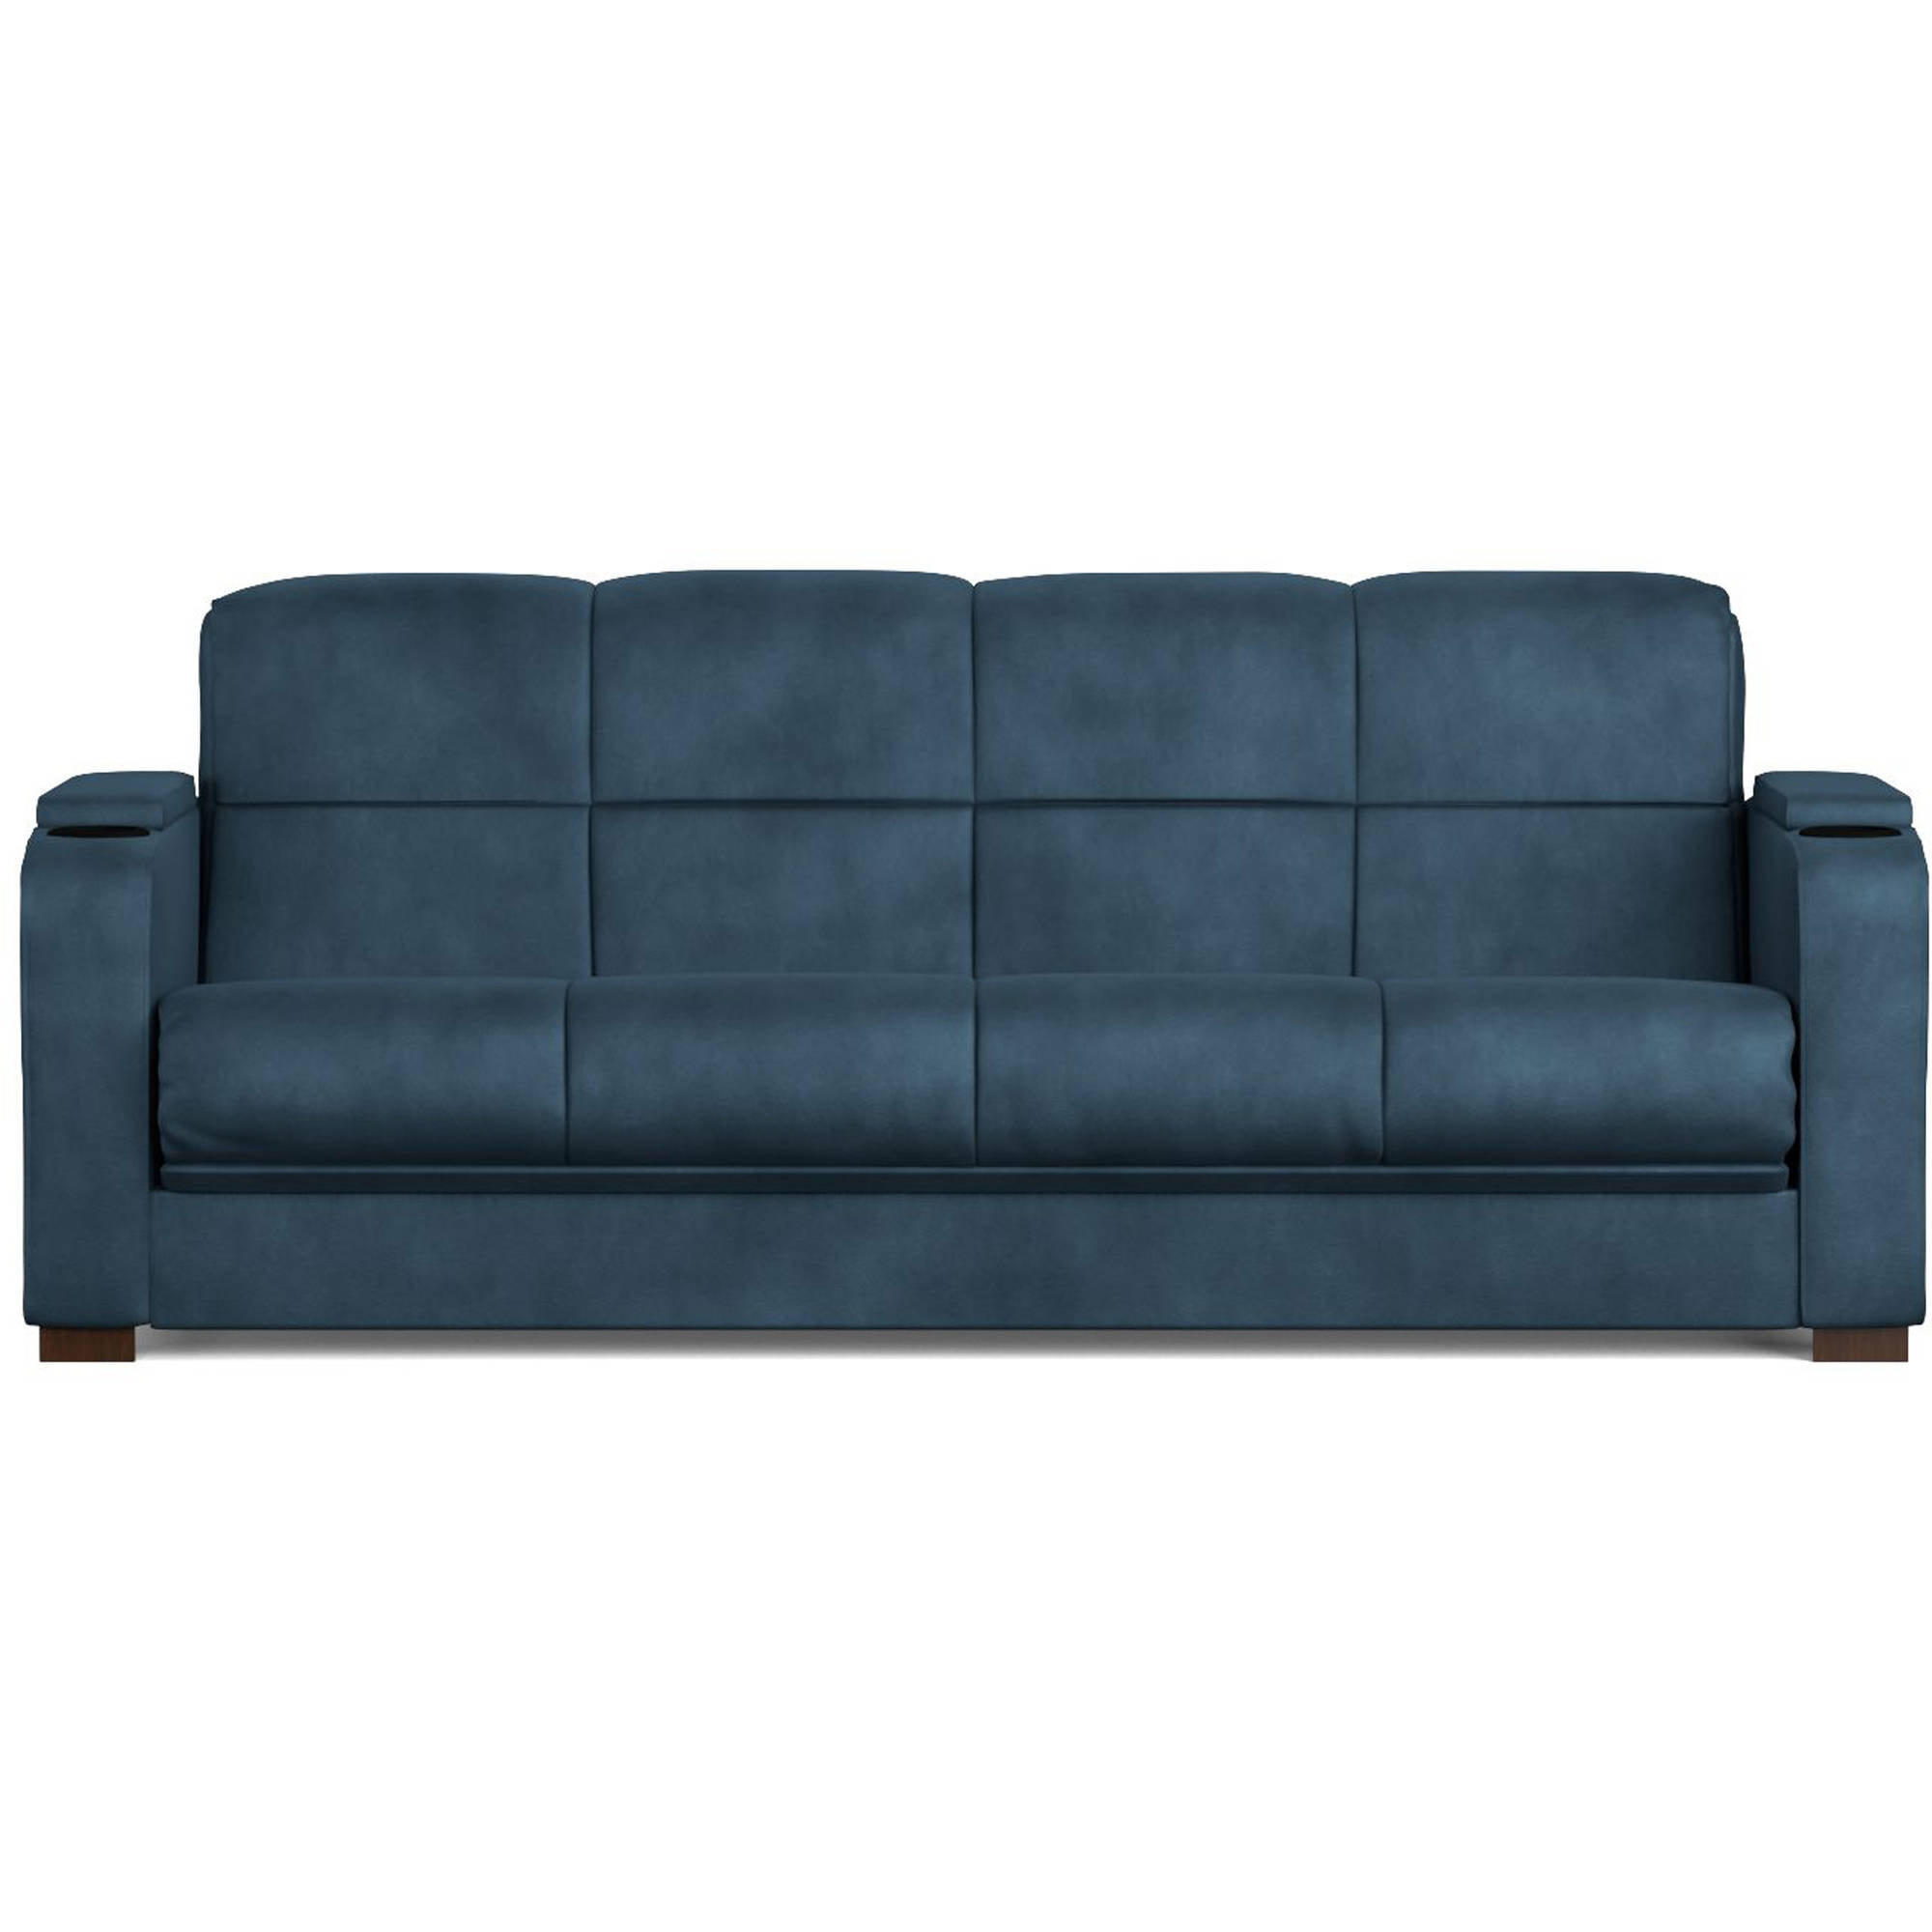 Mainstays Tyler Futon with Storage Sofa Sleeper Bed, Multiple Colors forecast